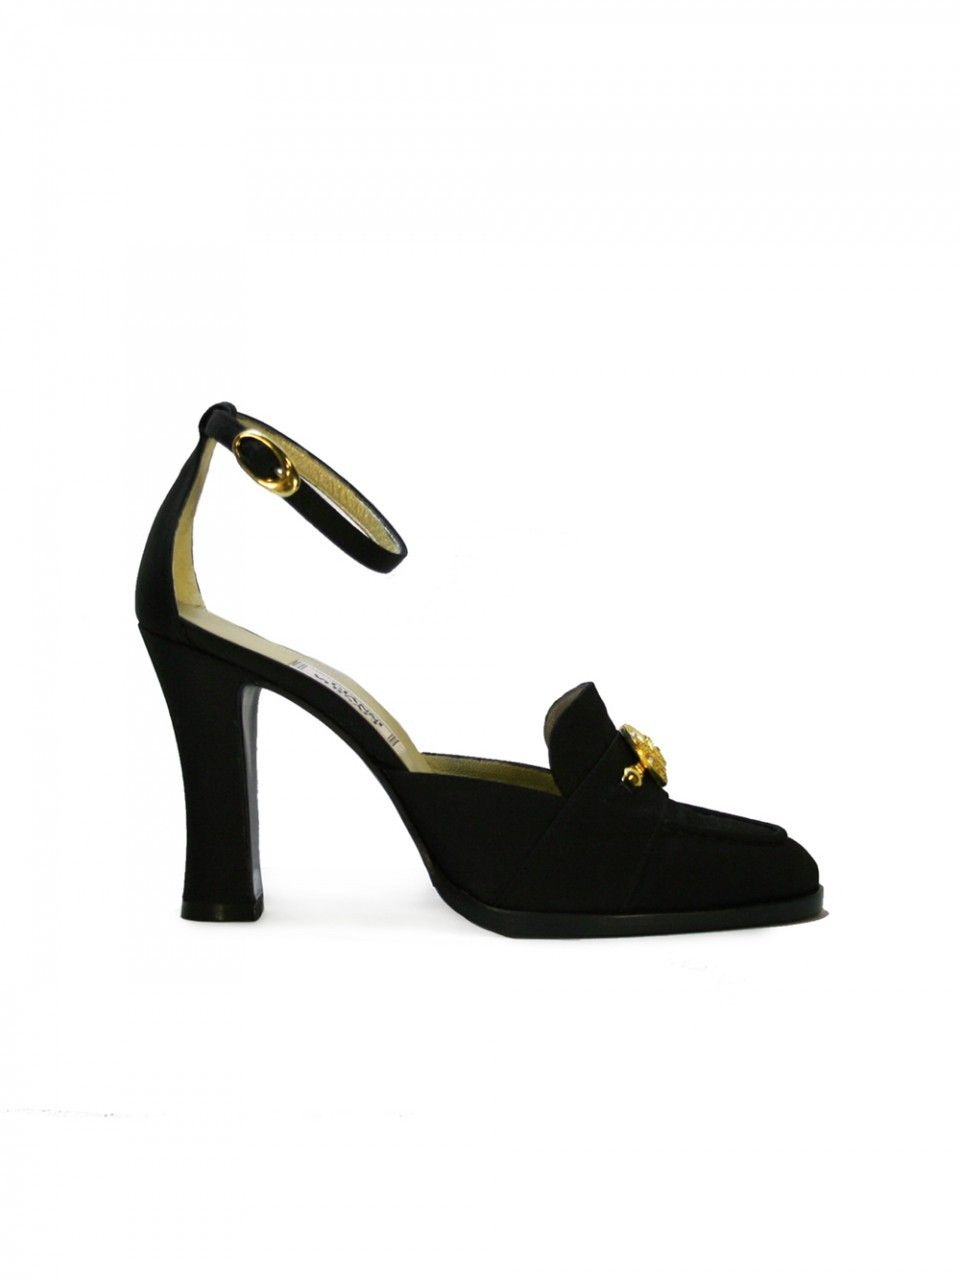 cheap sale clearance Gianni Versace Suede Wrap-Around Pumps really sale online nJE3G